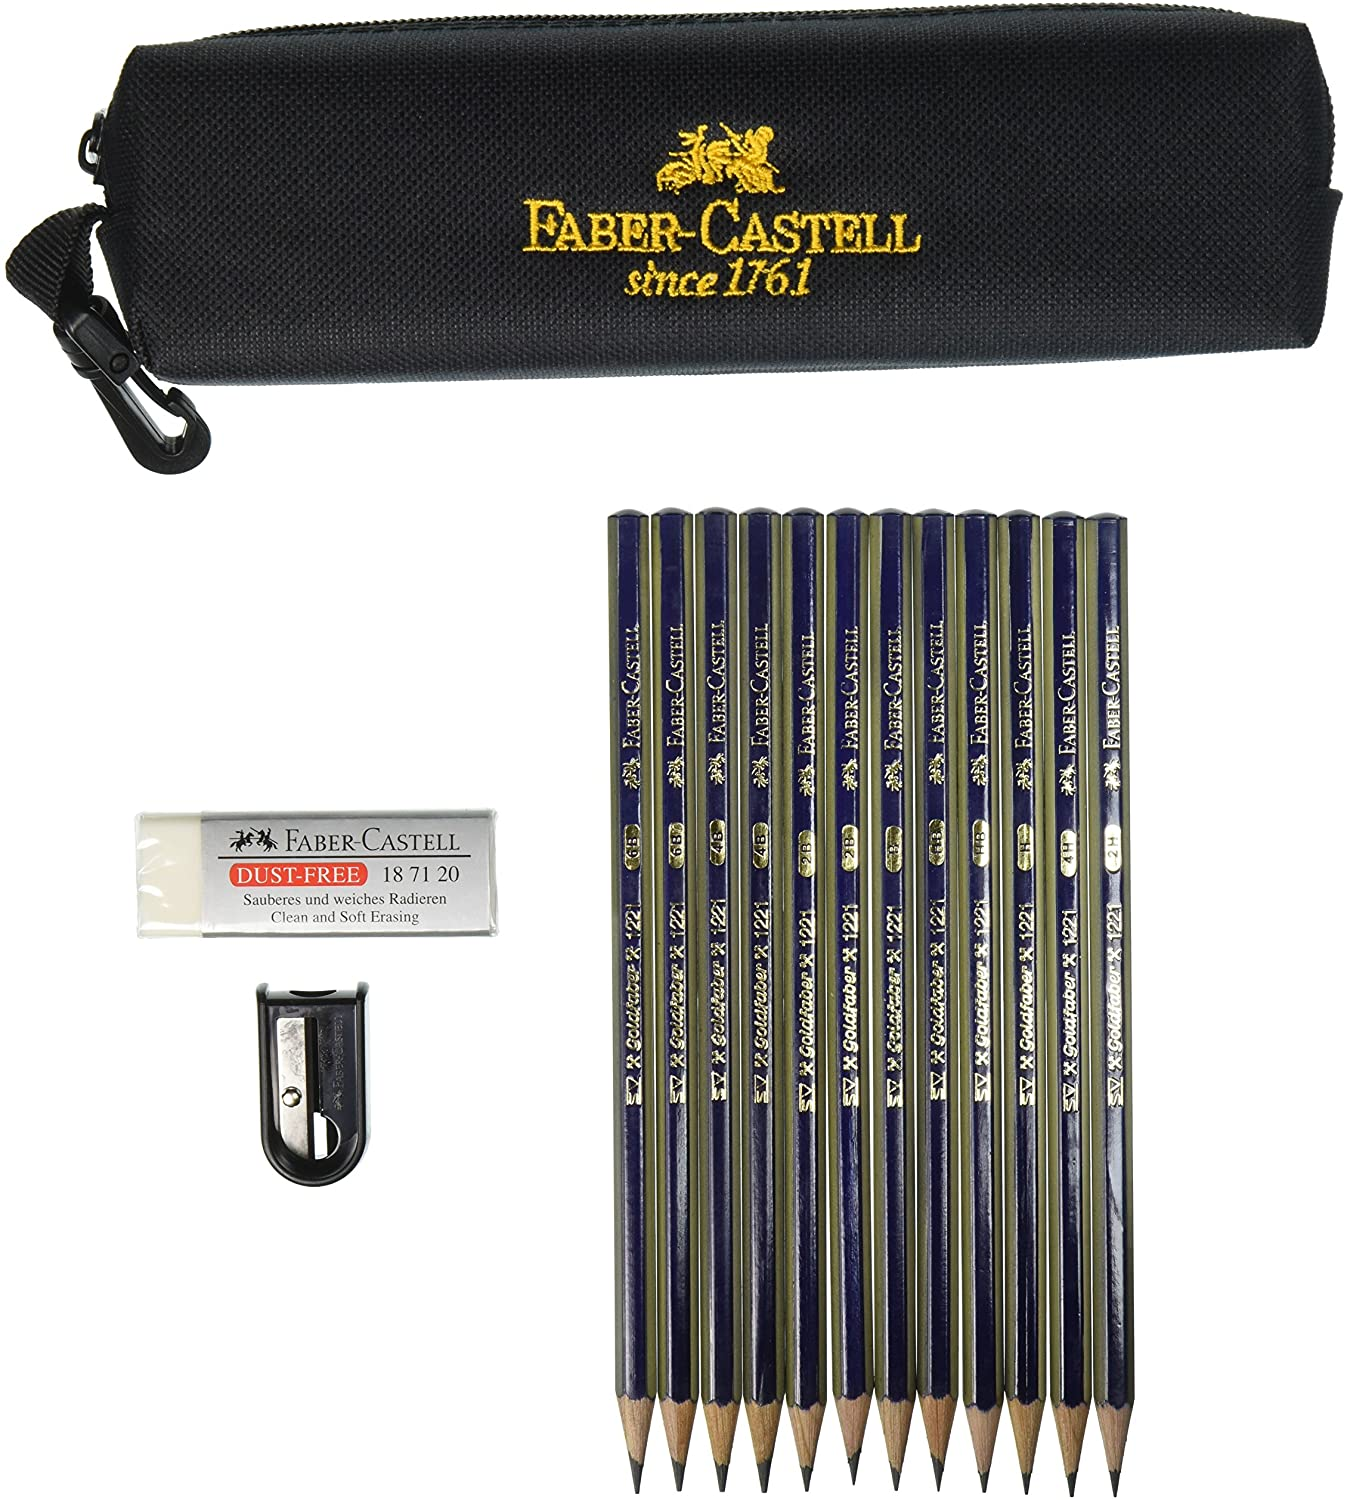 Faber-Castell 9000 Art Graphite Sketch Best Gifts Wood Pencil Sets 12 Counts With 12 Degree of Hardness 1 Large Dust Free Eraser 1 Faber Sharpener + 1 Kneaded Art Eraser 2H, H, F, HB.